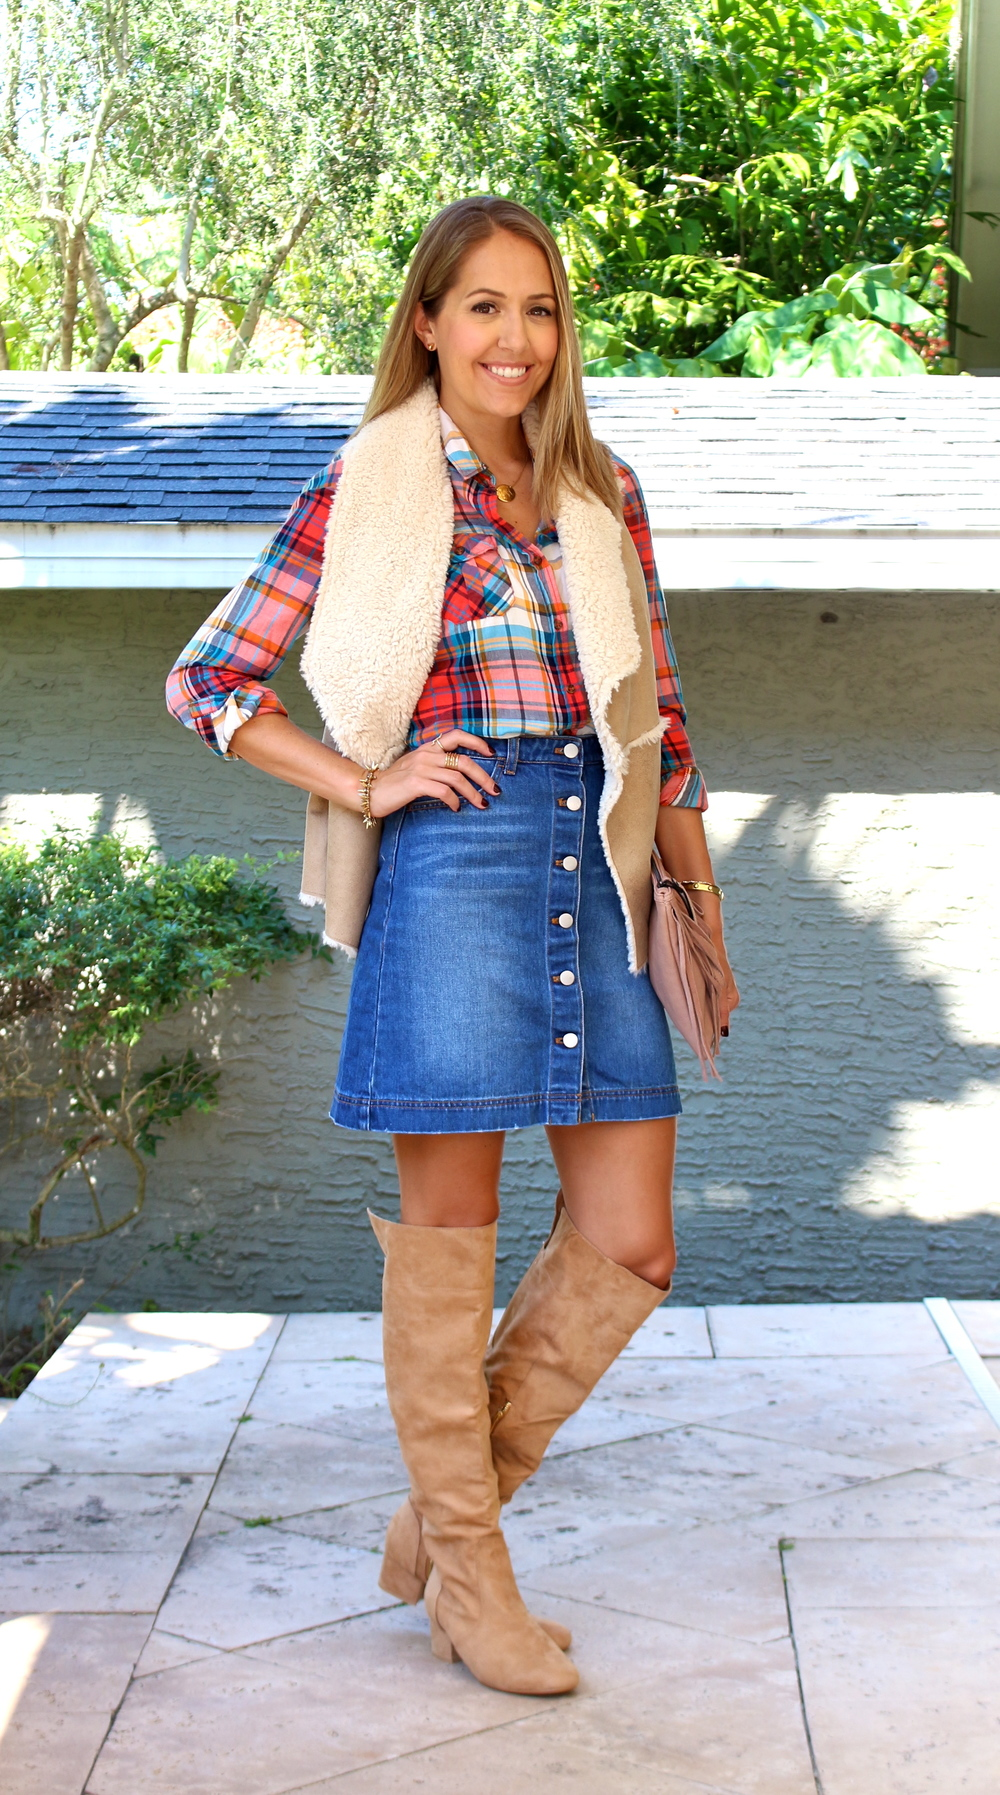 Plaid top, shearling vest, denim skirt